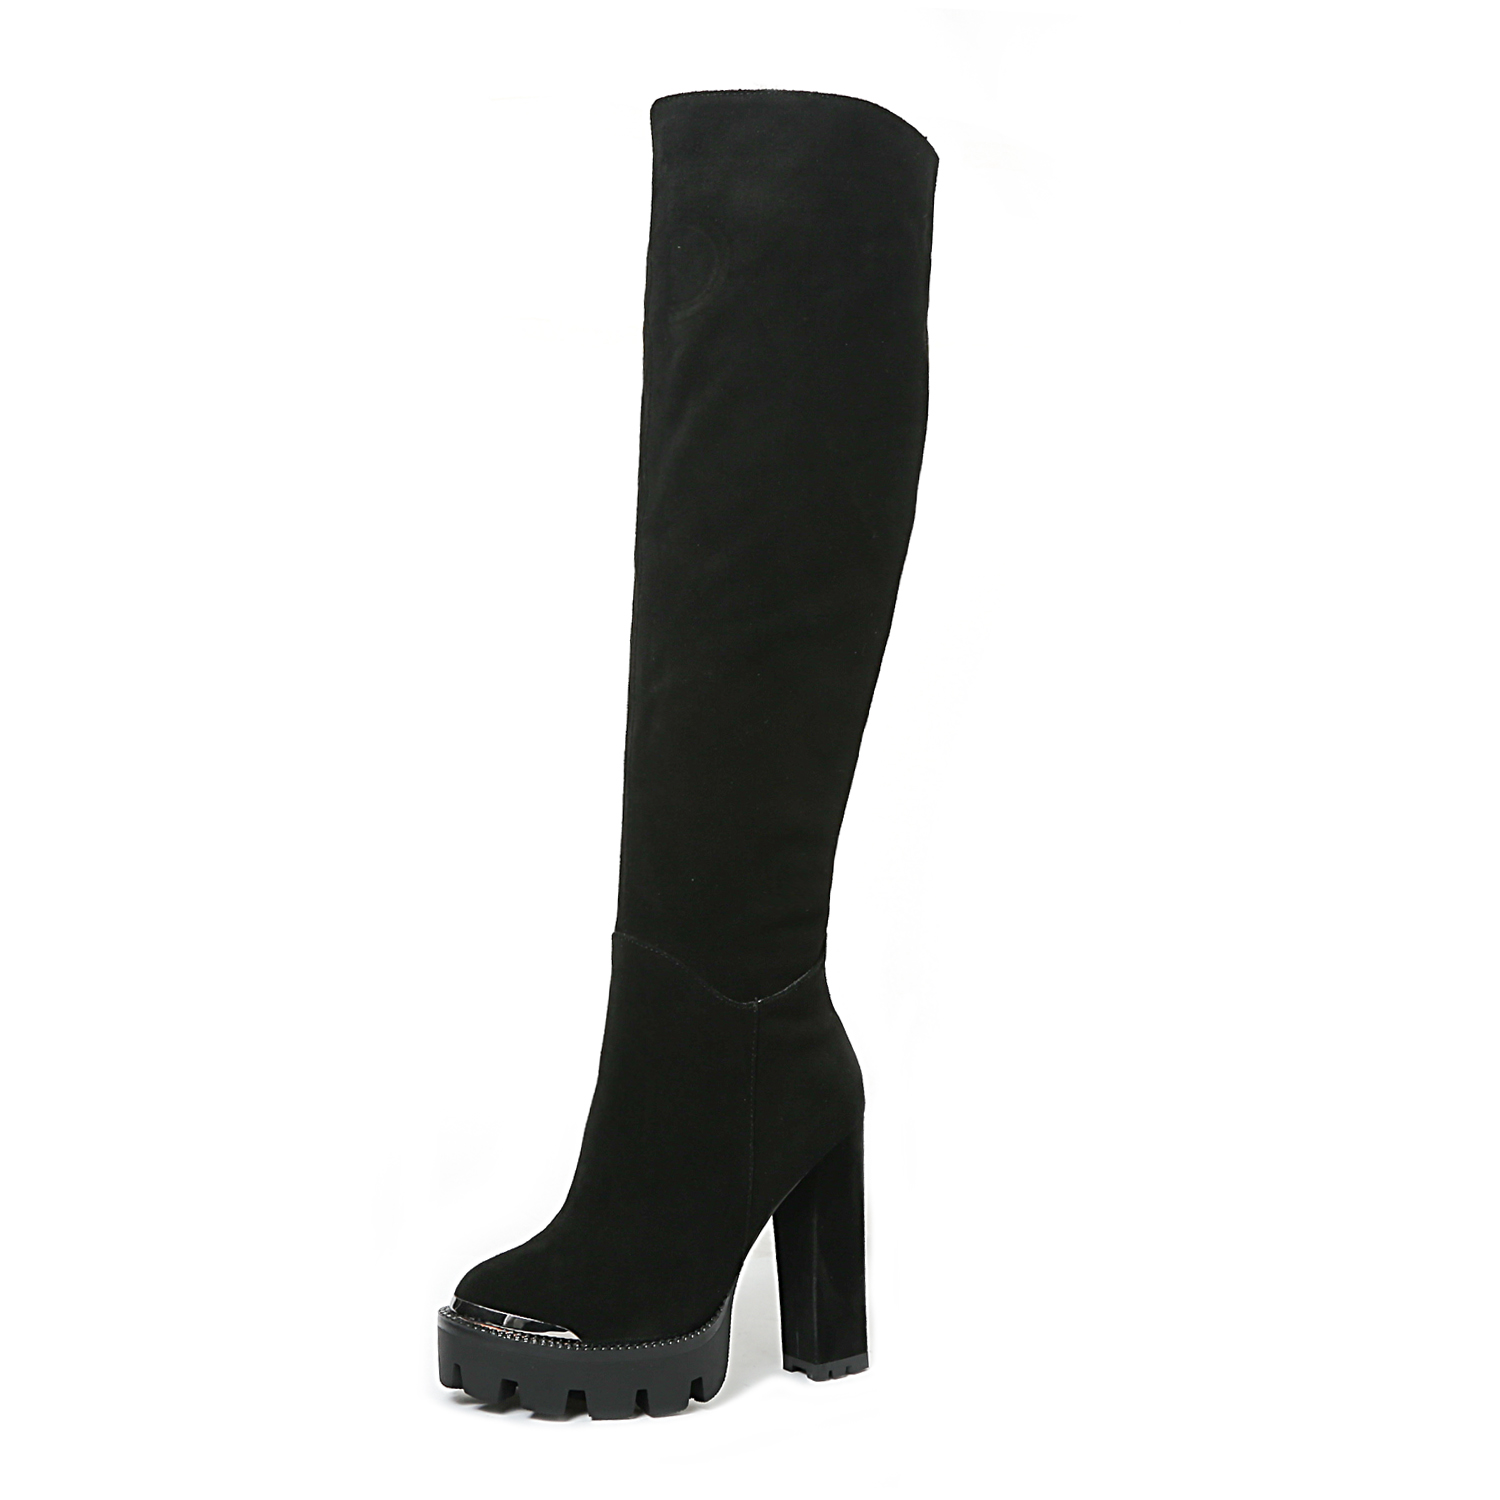 1a119ea1b78 US  61 - Arden Furtado fashion women s shoes in winter 2019 pointed toe  chunky heels zipper over the knee high boots concise mature -  www.ardenfurtado.com